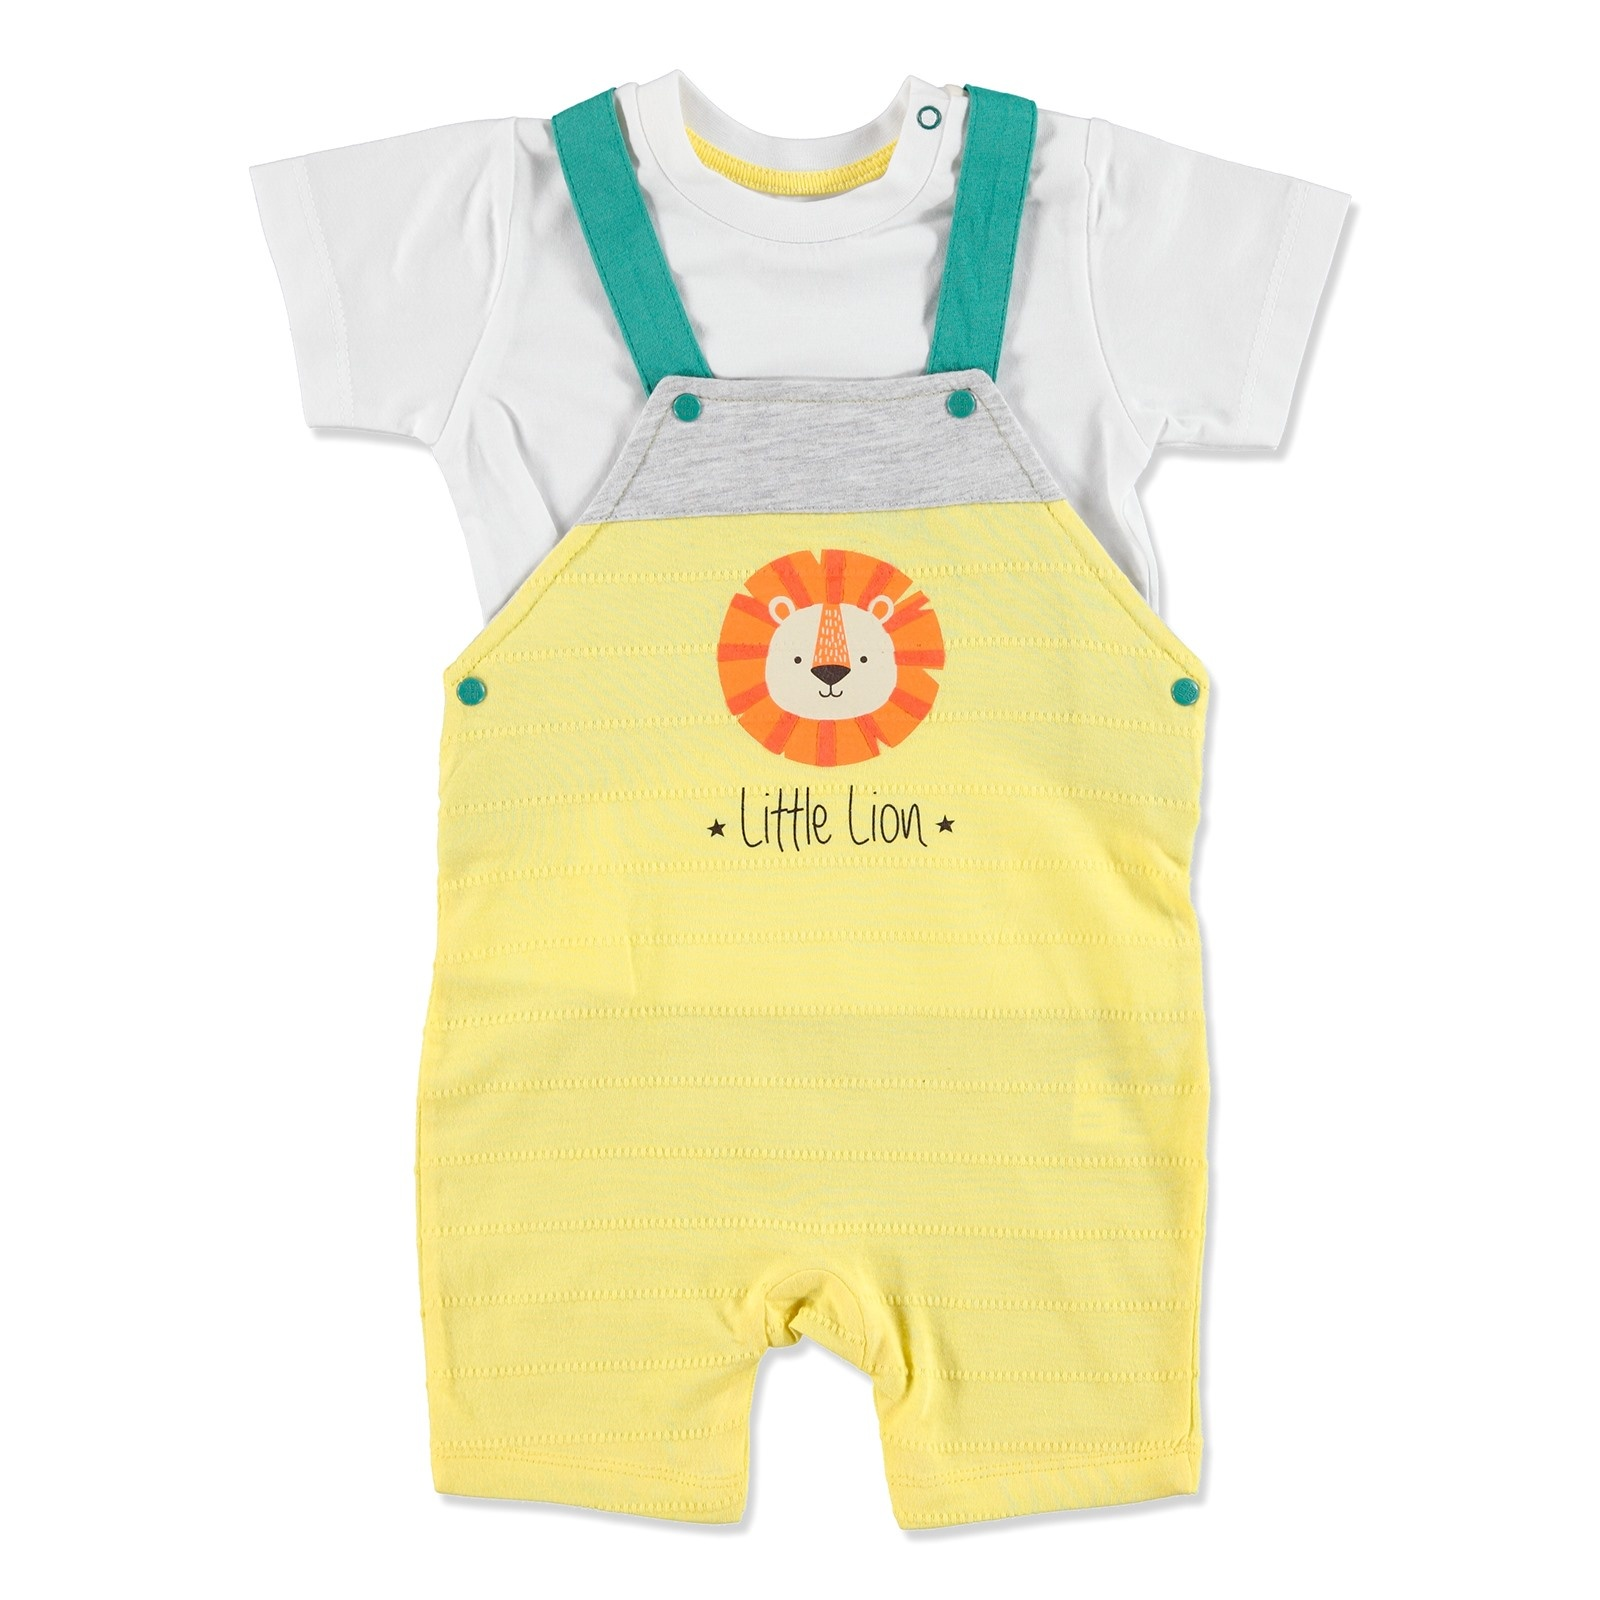 Ebebek HelloBaby Summer Baby Lion Cotton Short Sleeve Crew Neck Dungarees 2 Pcs